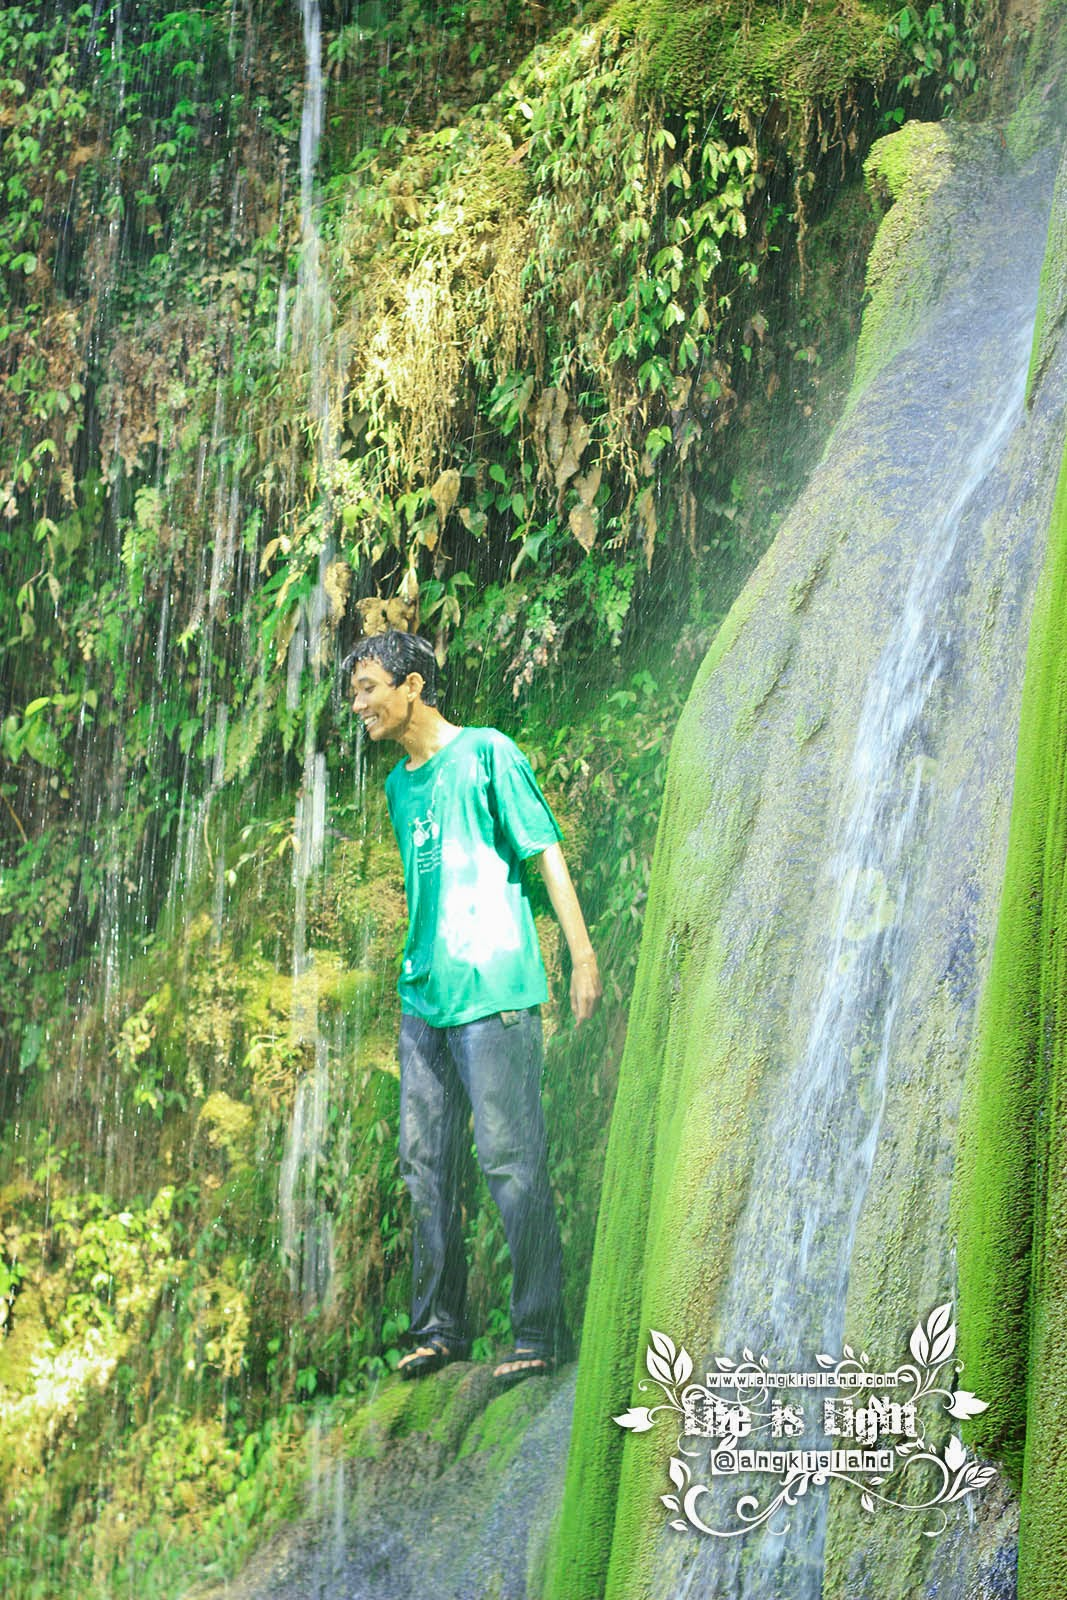 having fun Air Terjun Sigembor